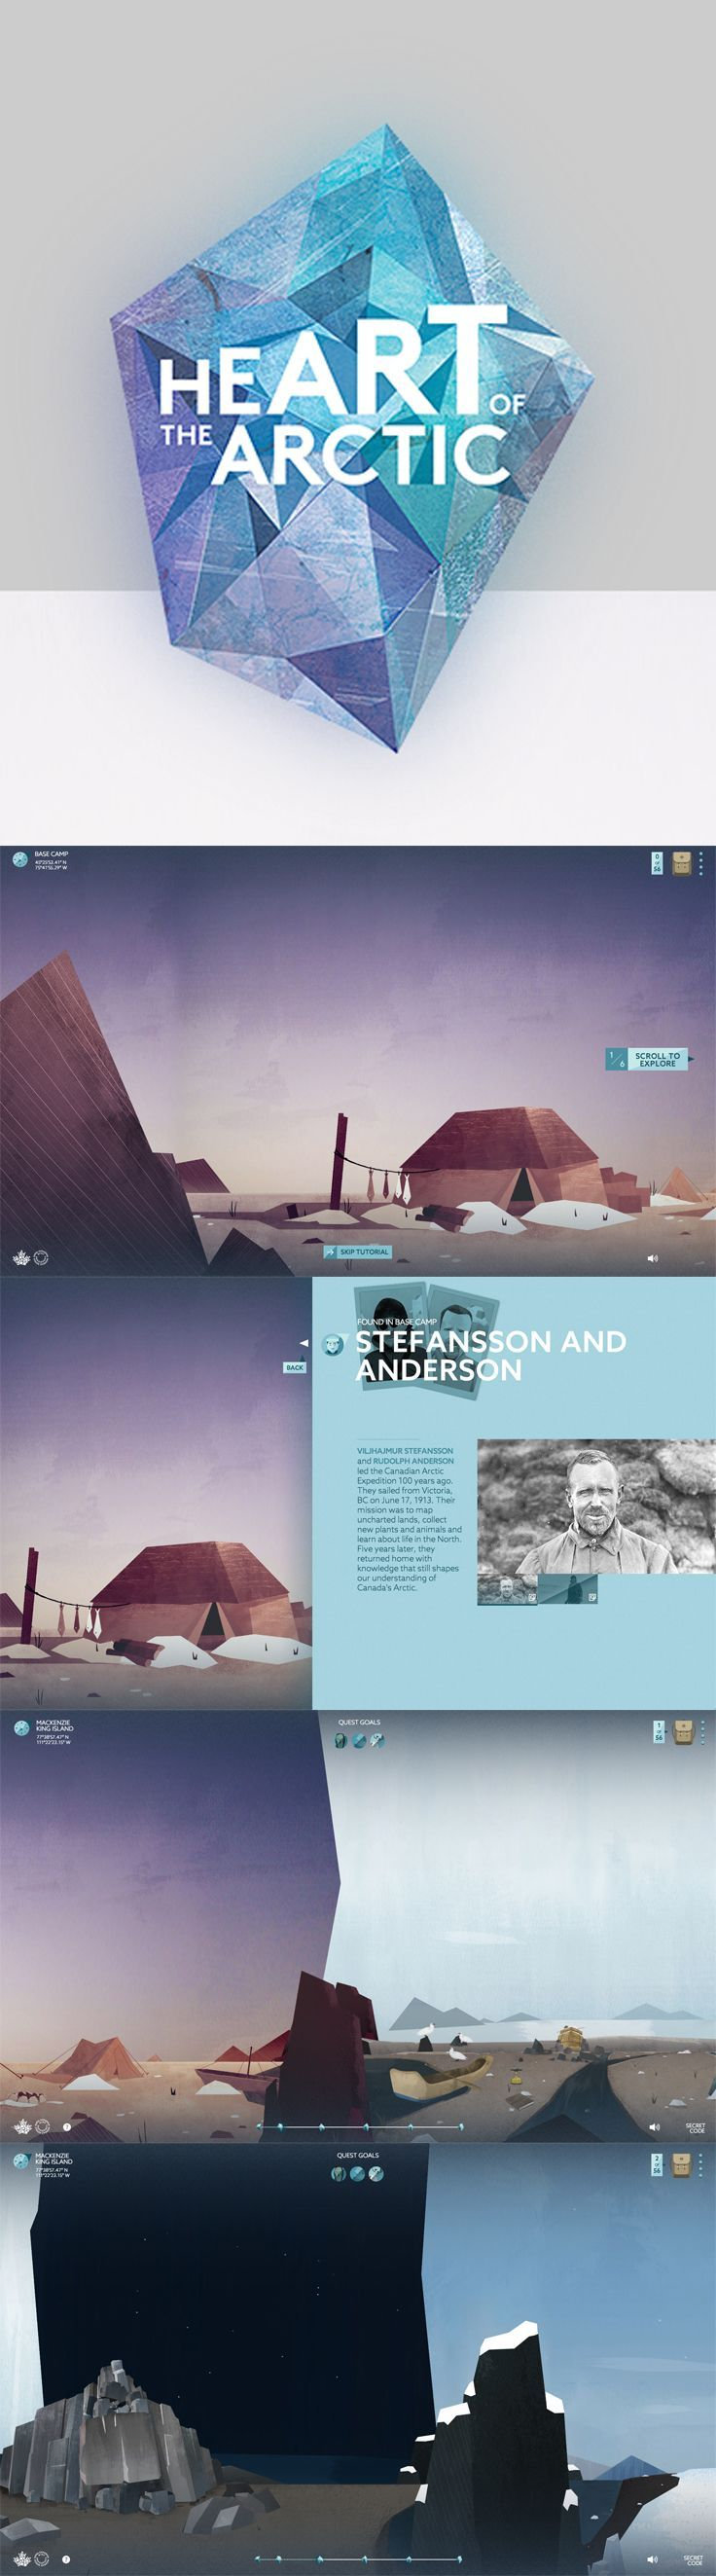 From the unique layout to the chillingly beautiful color palette - we love this web design! #webdesign #colorpalette